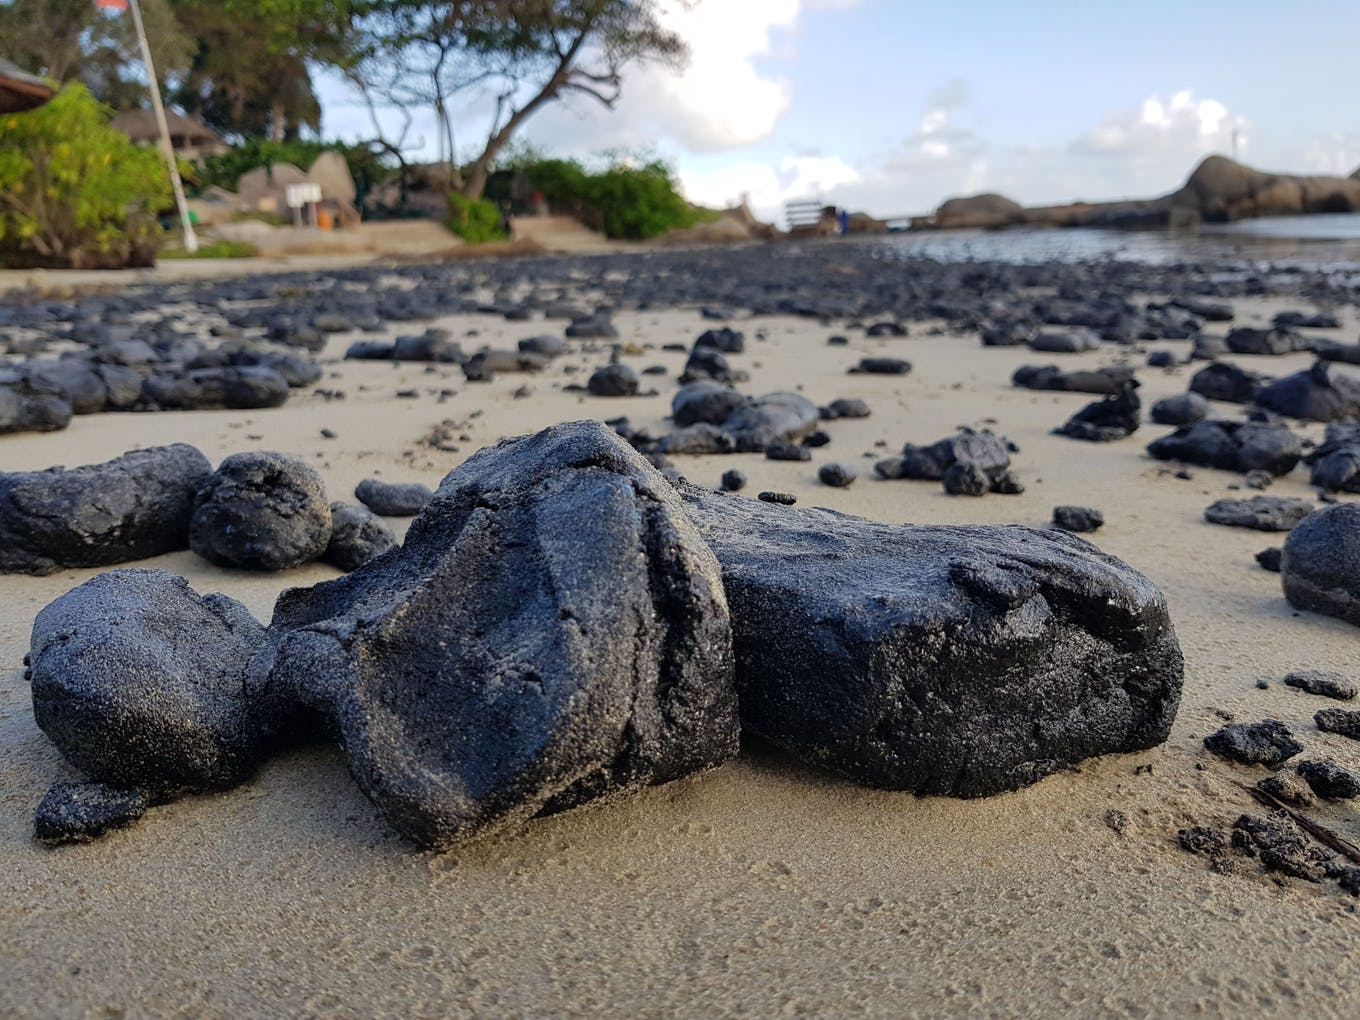 Oil clumps on a beach in the resort island of Bintan, Indonesia, near Singapore.